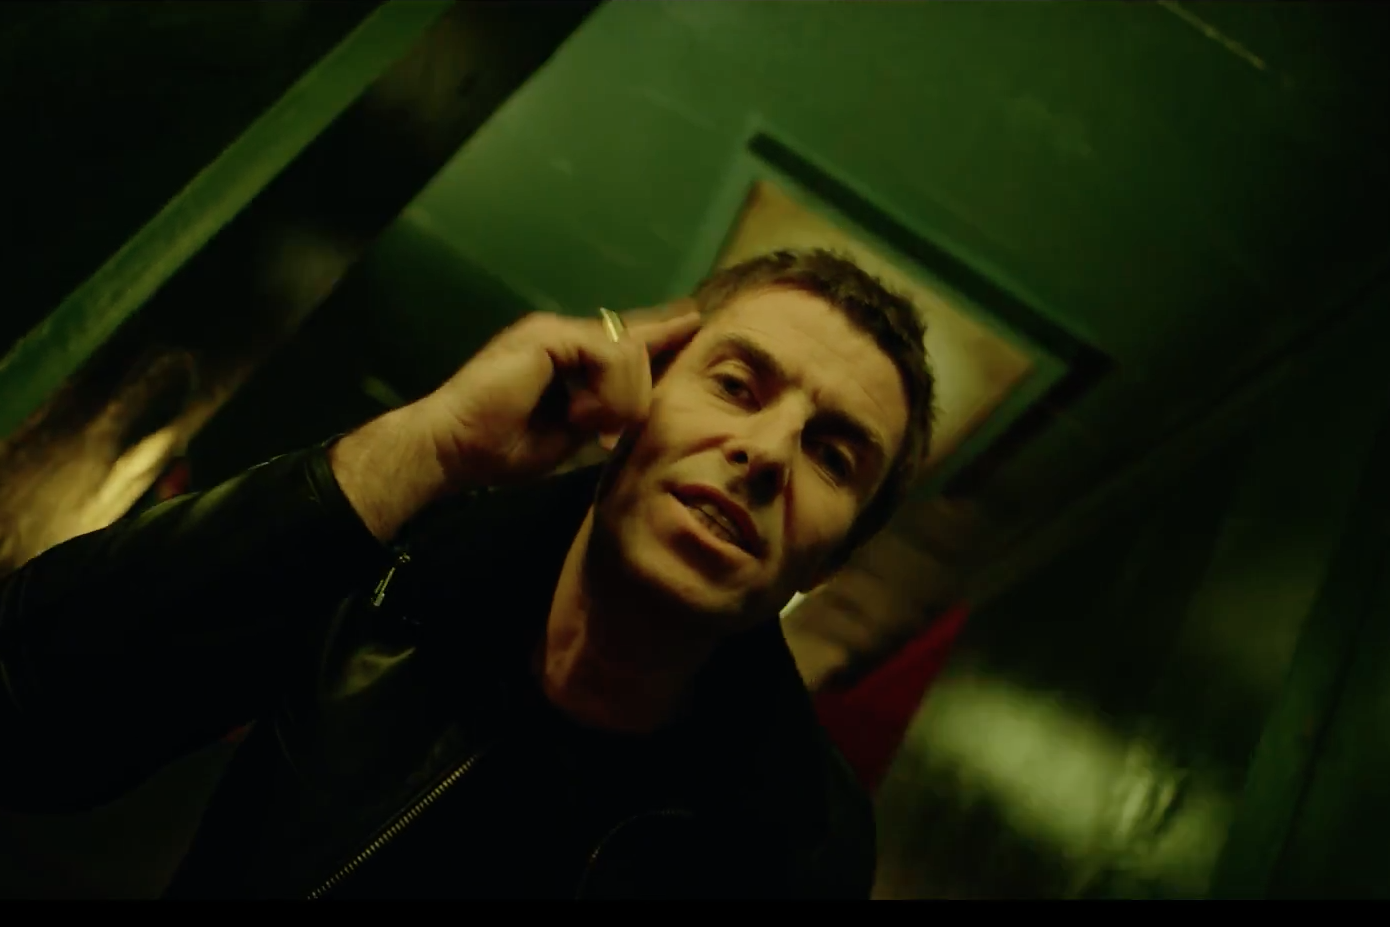 liam-gallagher-wall-of-glass-1496256853